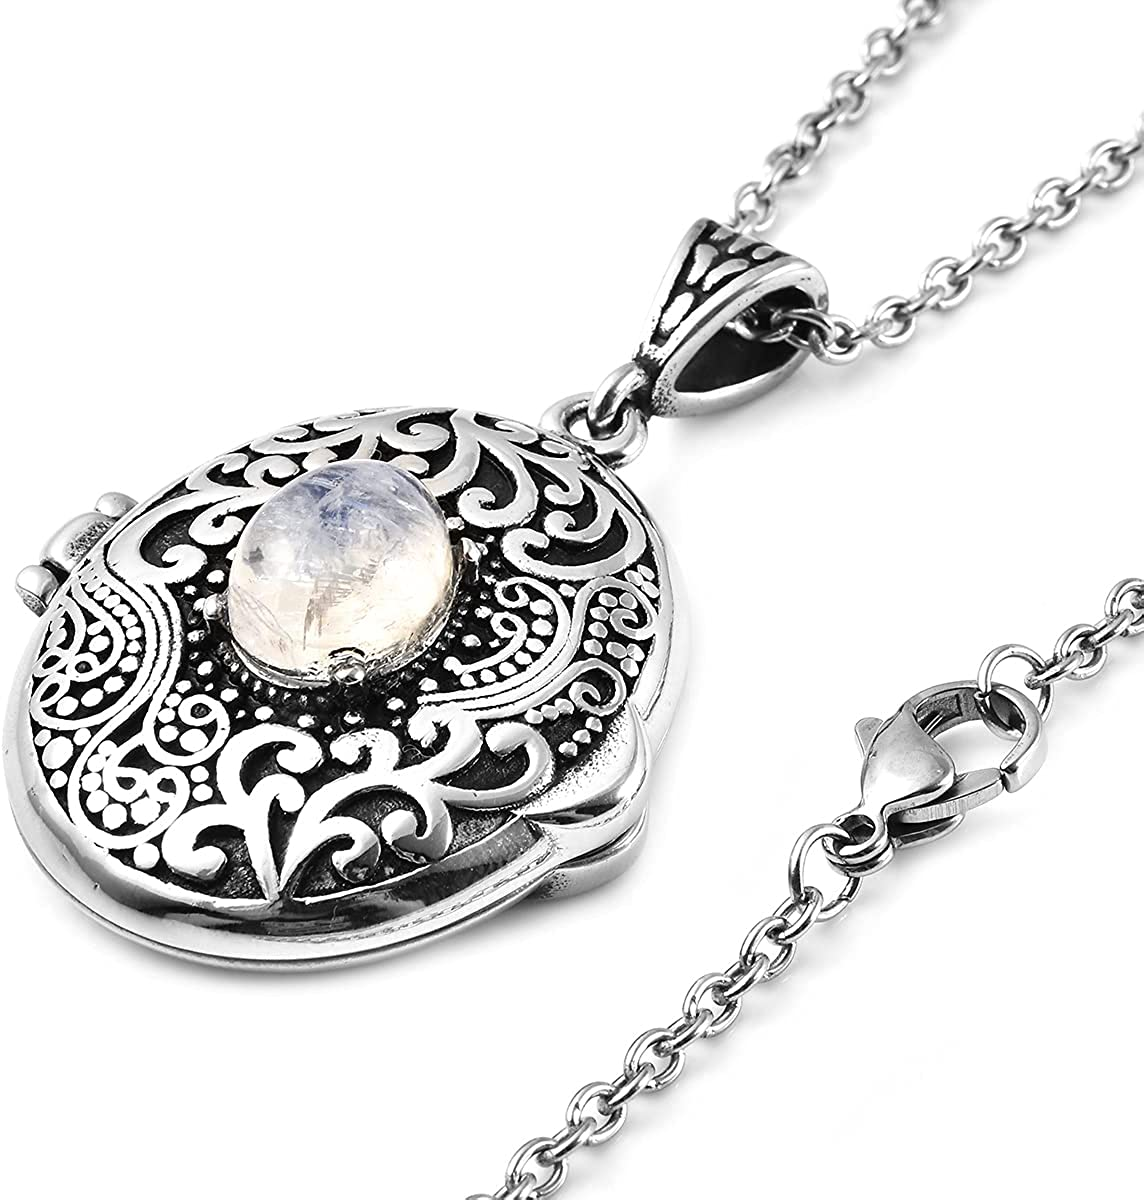 Shop LC Stainless Steel White Moonstone Locket Pendant Necklace 24'' Costume Stylish Delicate Jewelry Gifts for Her Unique Gifts for Women